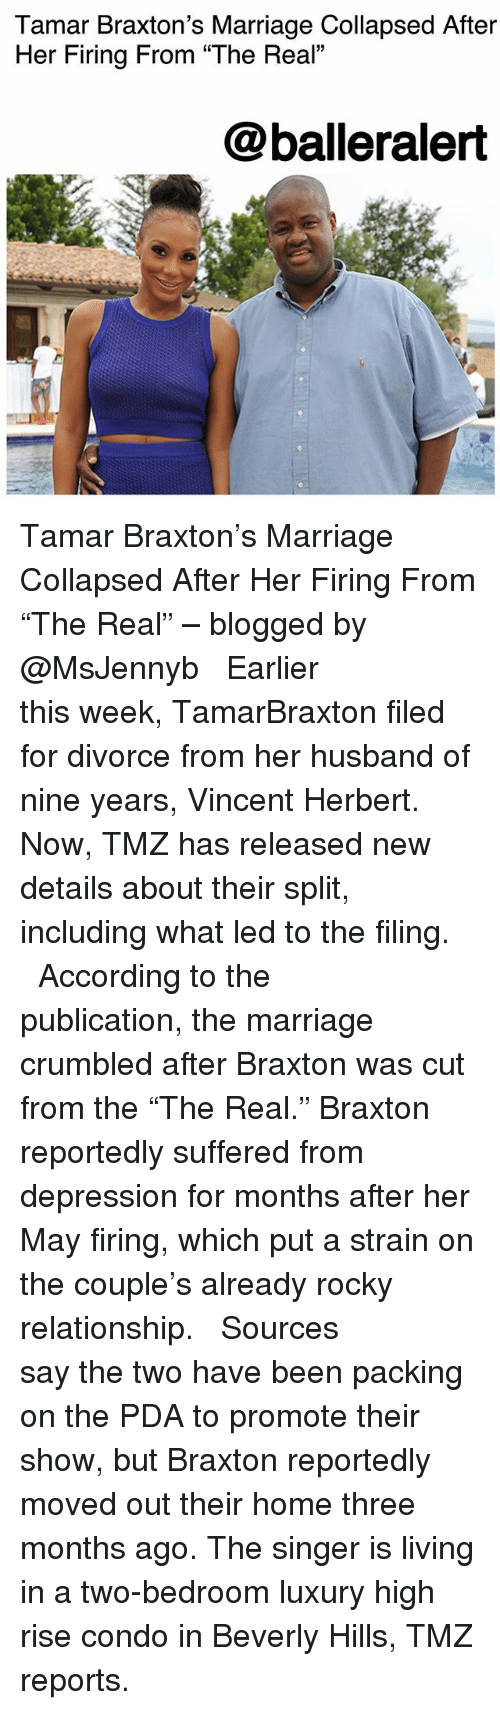 """Marriage, Memes, and Rocky: Tamar Braxton's Marriage Collapsed After  Her Firing From """"The Real""""  @balleralert Tamar Braxton's Marriage Collapsed After Her Firing From """"The Real"""" – blogged by @MsJennyb ⠀⠀⠀⠀⠀⠀⠀ ⠀⠀⠀⠀⠀⠀⠀ Earlier this week, TamarBraxton filed for divorce from her husband of nine years, Vincent Herbert. Now, TMZ has released new details about their split, including what led to the filing. ⠀⠀⠀⠀⠀⠀⠀ ⠀⠀⠀⠀⠀⠀⠀ According to the publication, the marriage crumbled after Braxton was cut from the """"The Real."""" Braxton reportedly suffered from depression for months after her May firing, which put a strain on the couple's already rocky relationship. ⠀⠀⠀⠀⠀⠀⠀ ⠀⠀⠀⠀⠀⠀⠀ Sources say the two have been packing on the PDA to promote their show, but Braxton reportedly moved out their home three months ago. The singer is living in a two-bedroom luxury high rise condo in Beverly Hills, TMZ reports."""